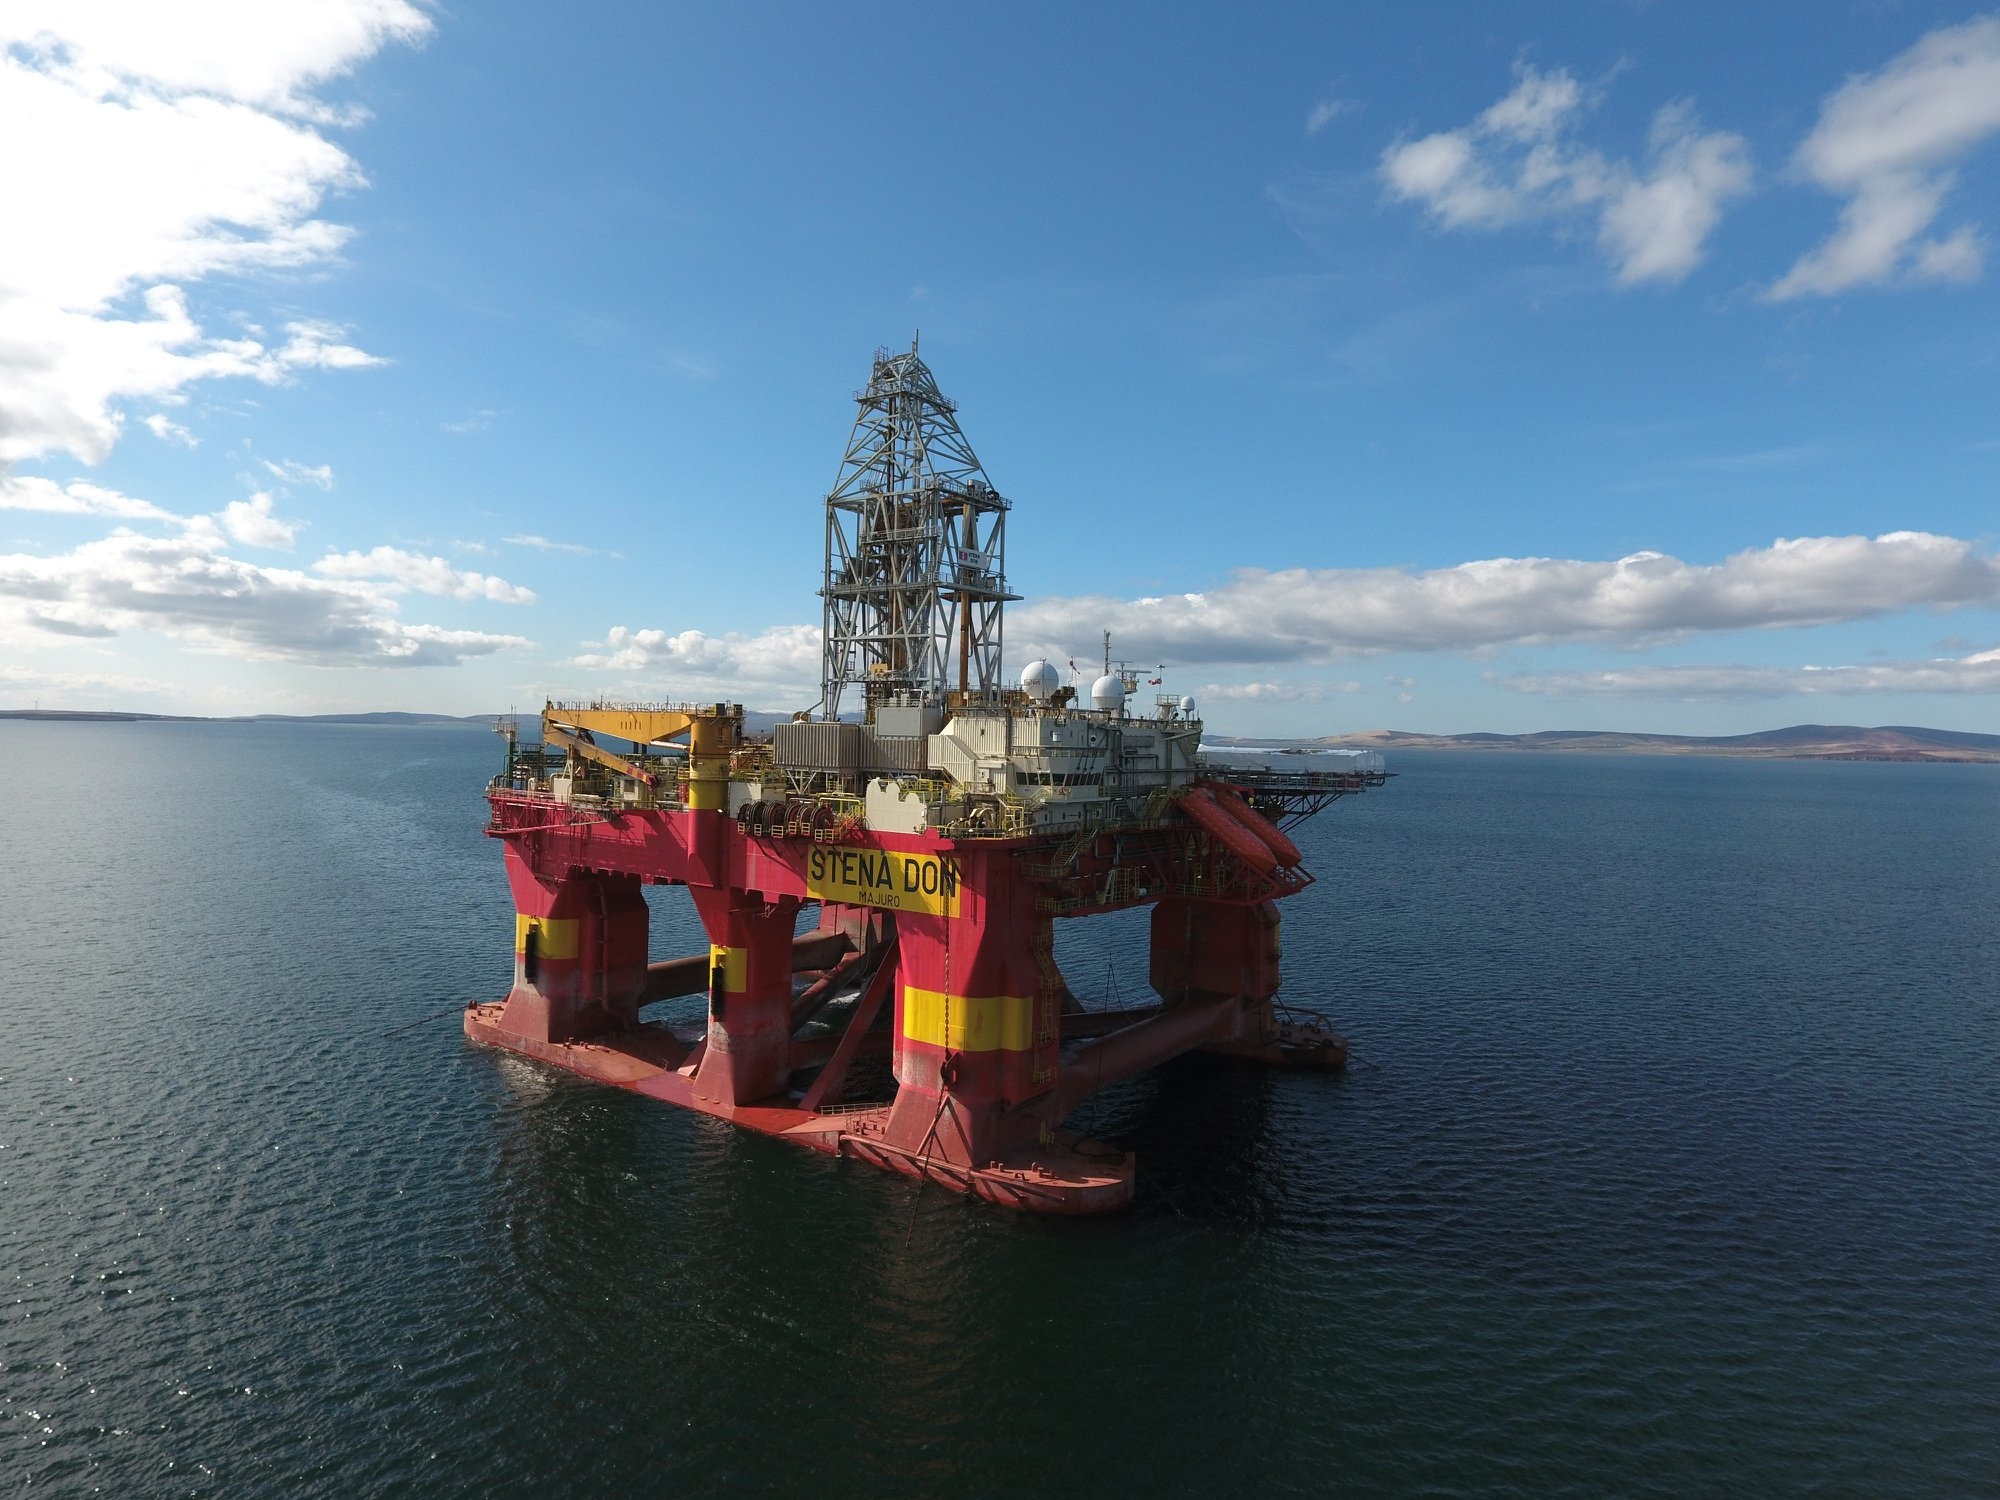 One quarter of the global floater fleet faces scrapping amid tough times for the offshore industry, Rystad has said, with demand hitting bottom in 2021.